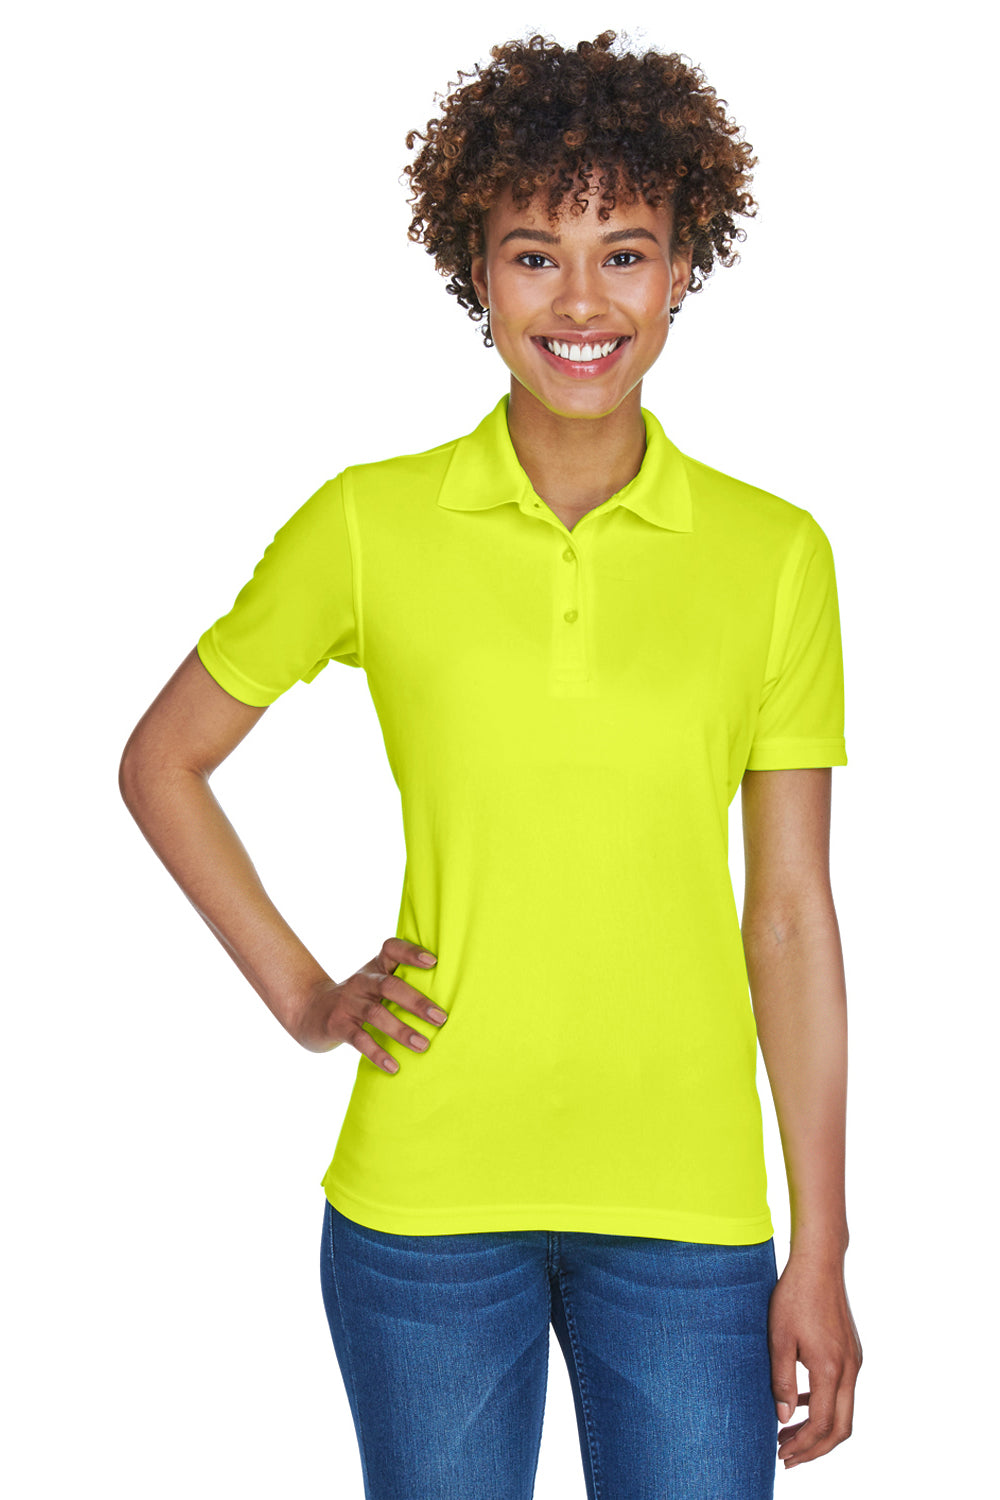 UltraClub 8210L Womens Cool & Dry Moisture Wicking Short Sleeve Polo Shirt Bright Yellow Front